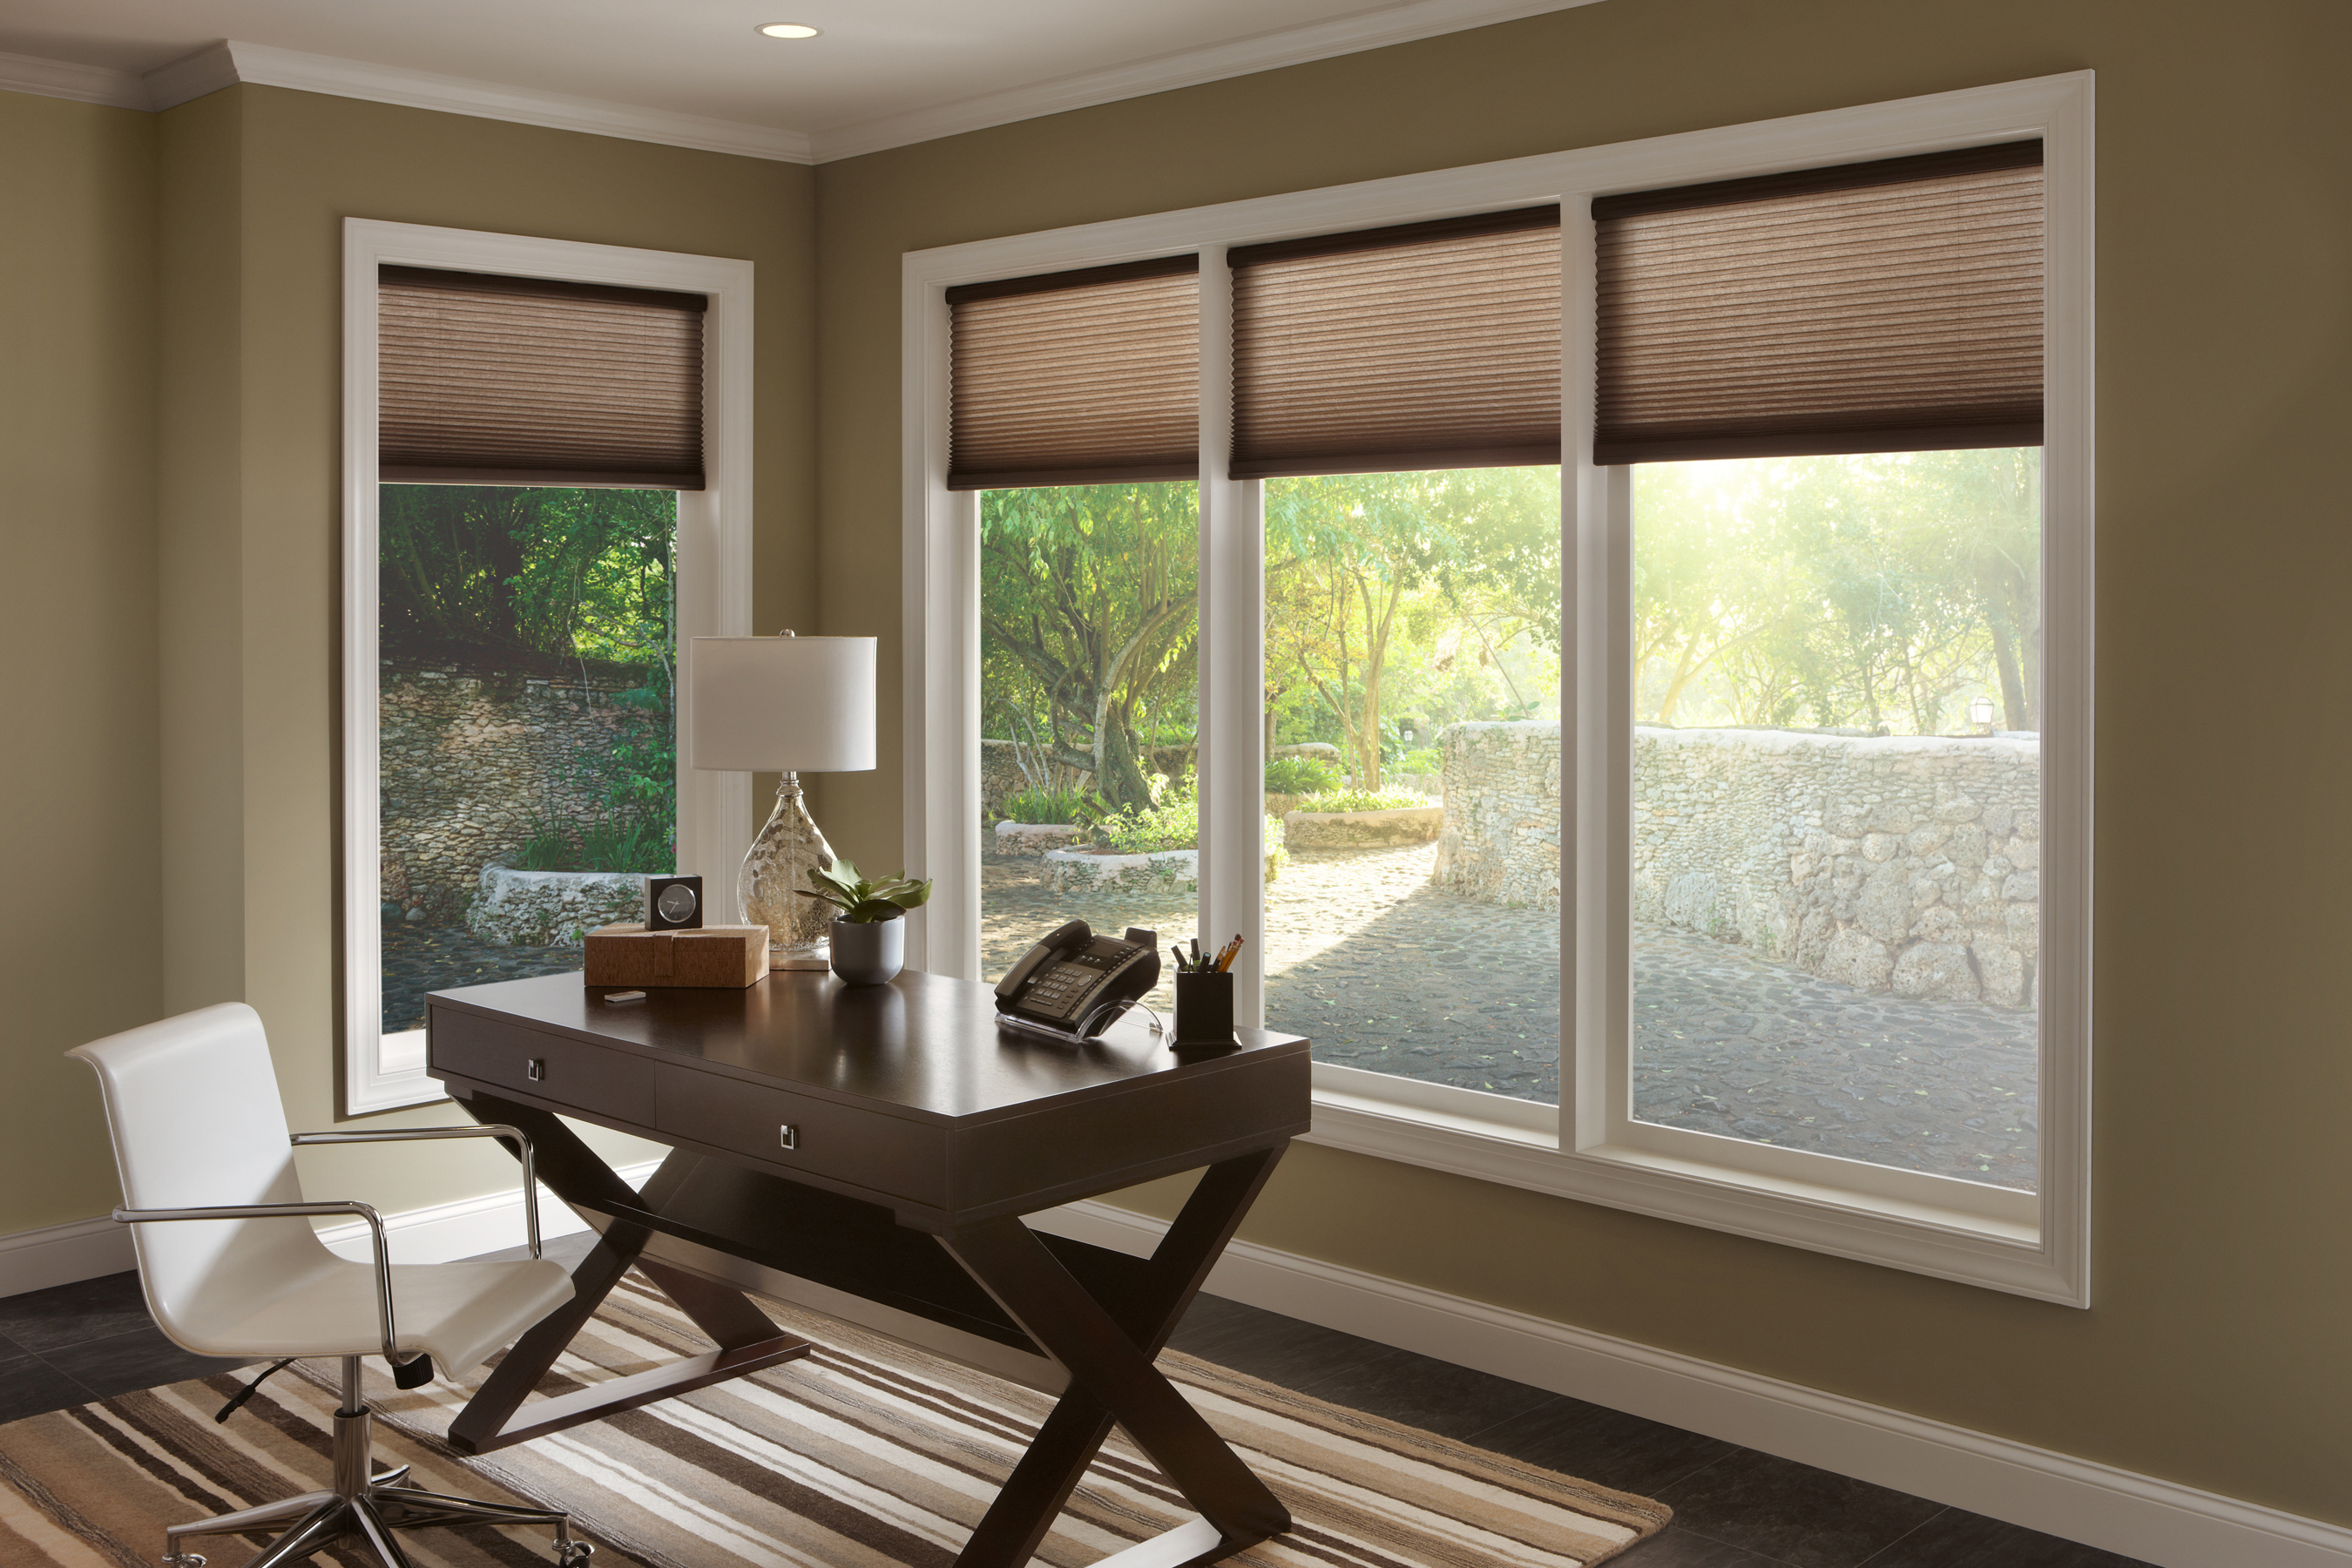 3 reasons to love automatic blinds FUZVOUD